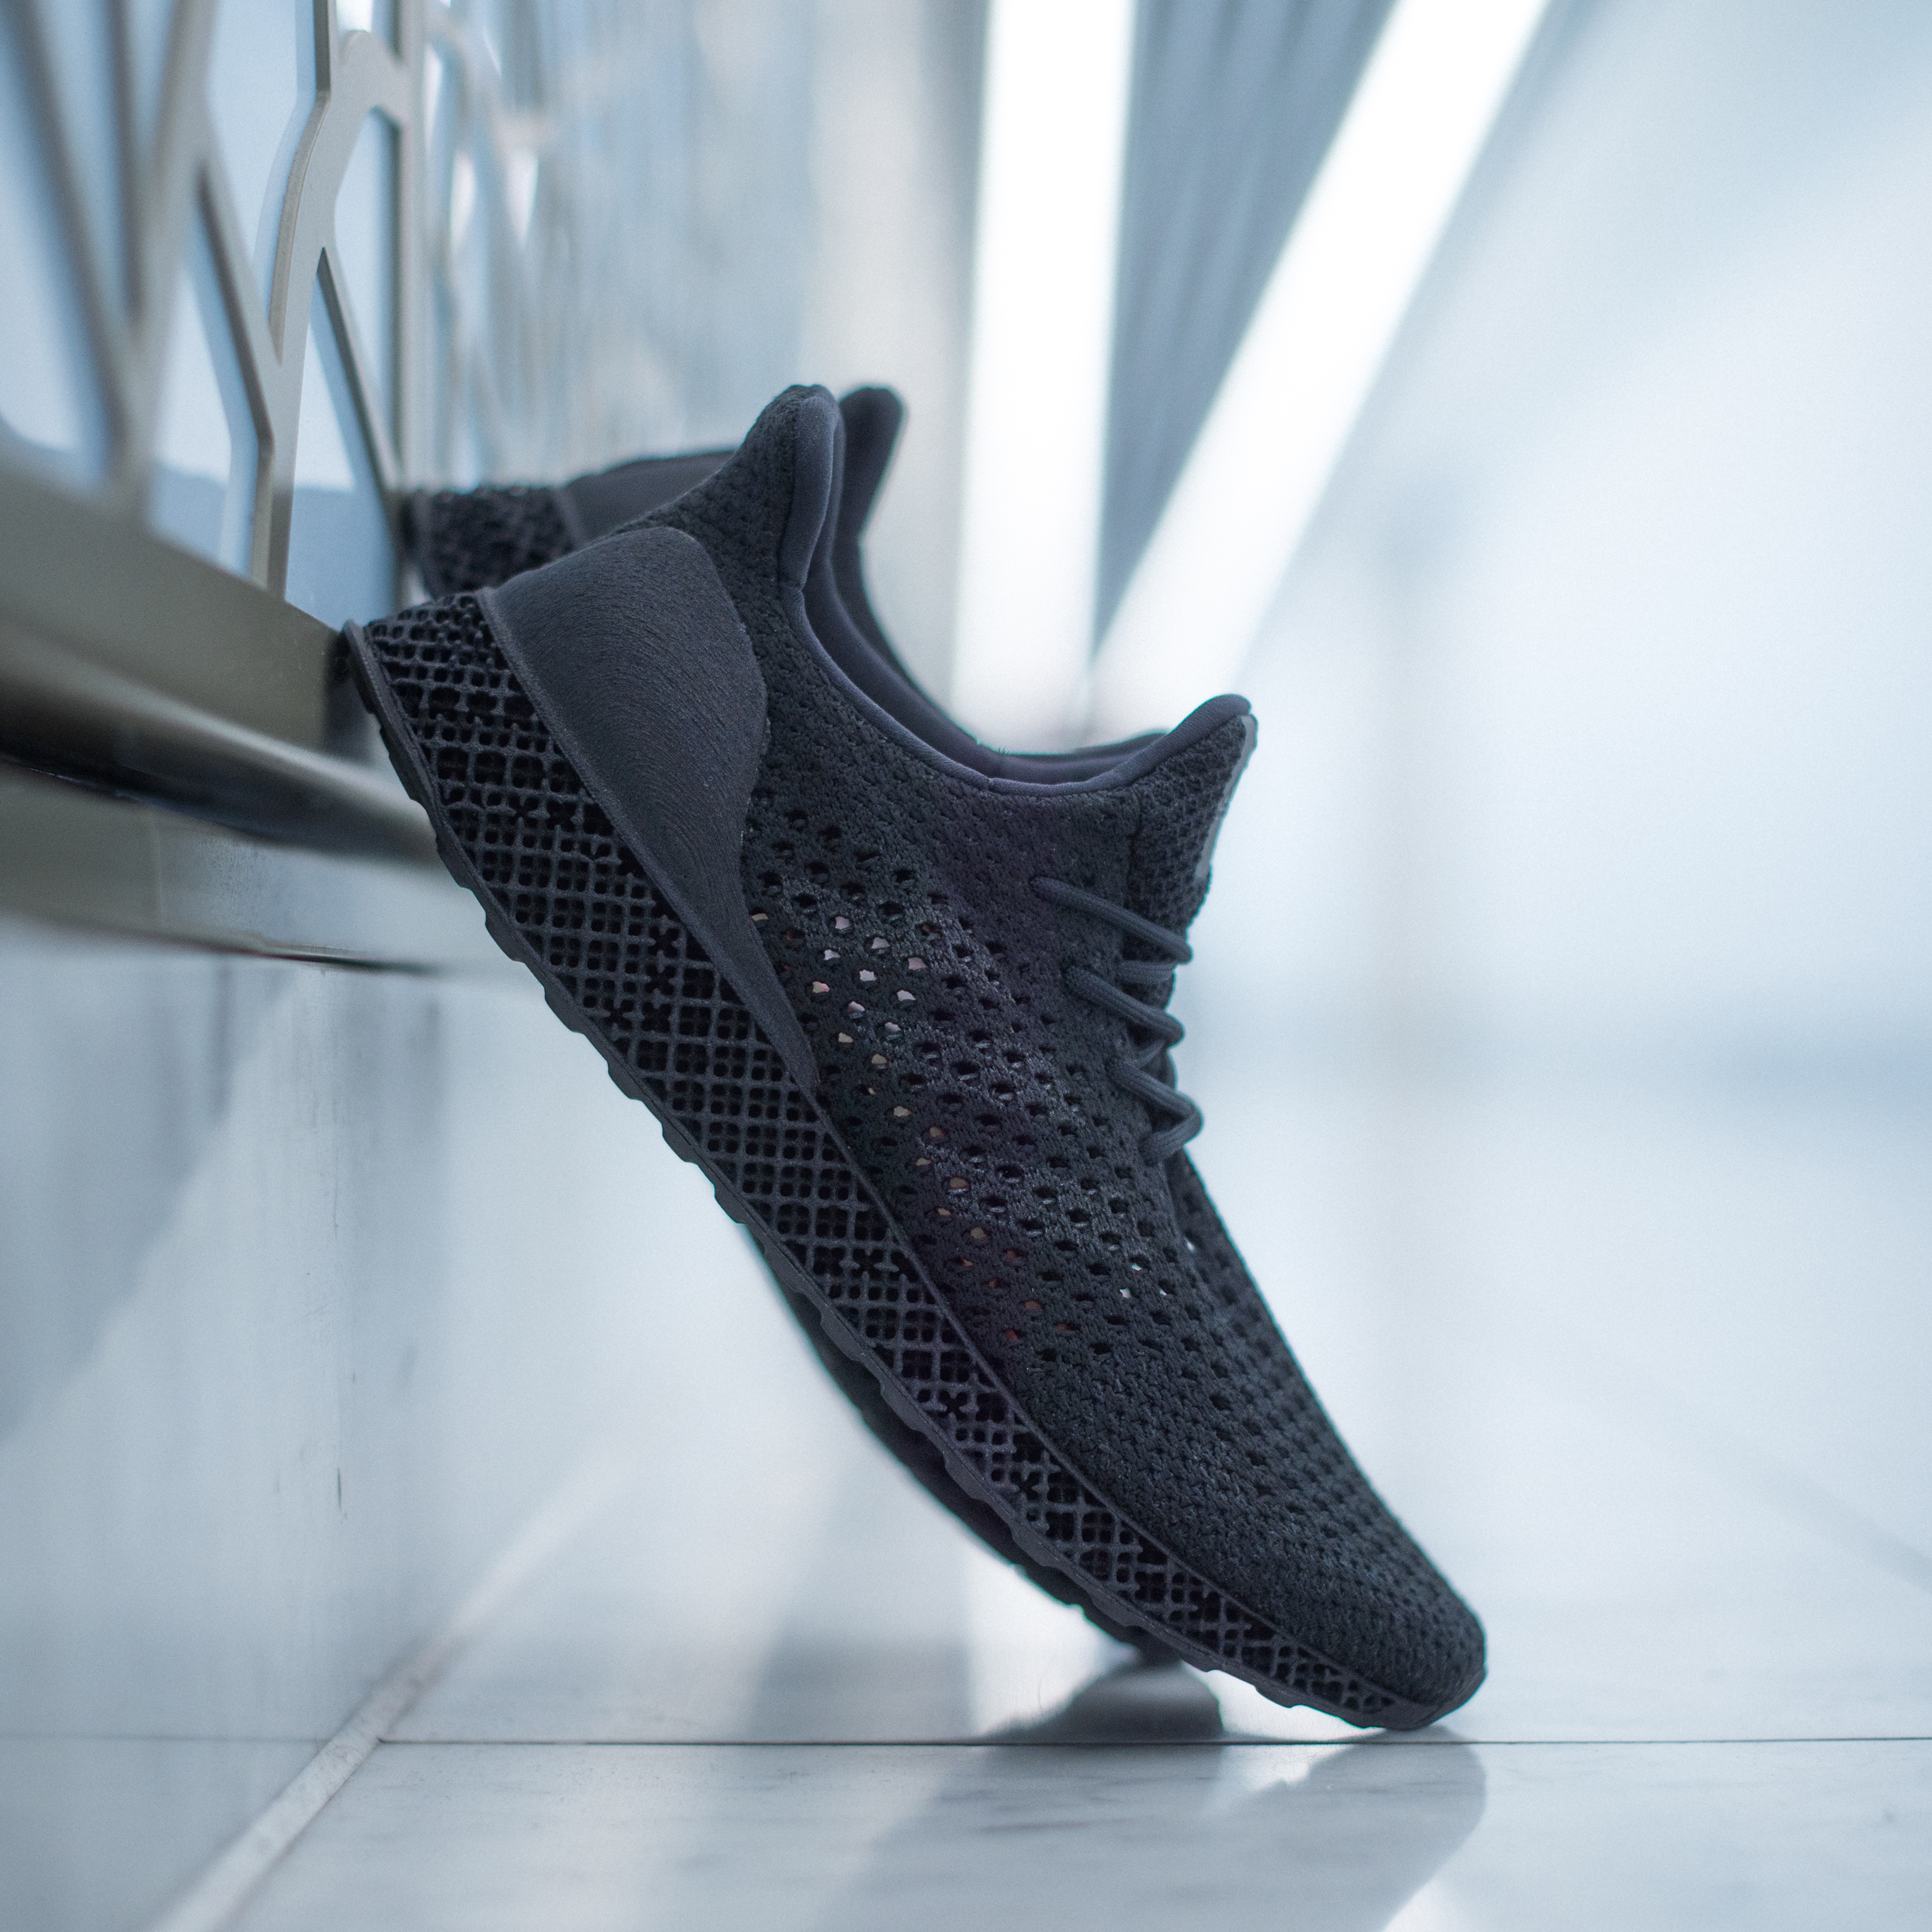 Amanecer puente Increíble  3D-printed Adidas trainers go on sale